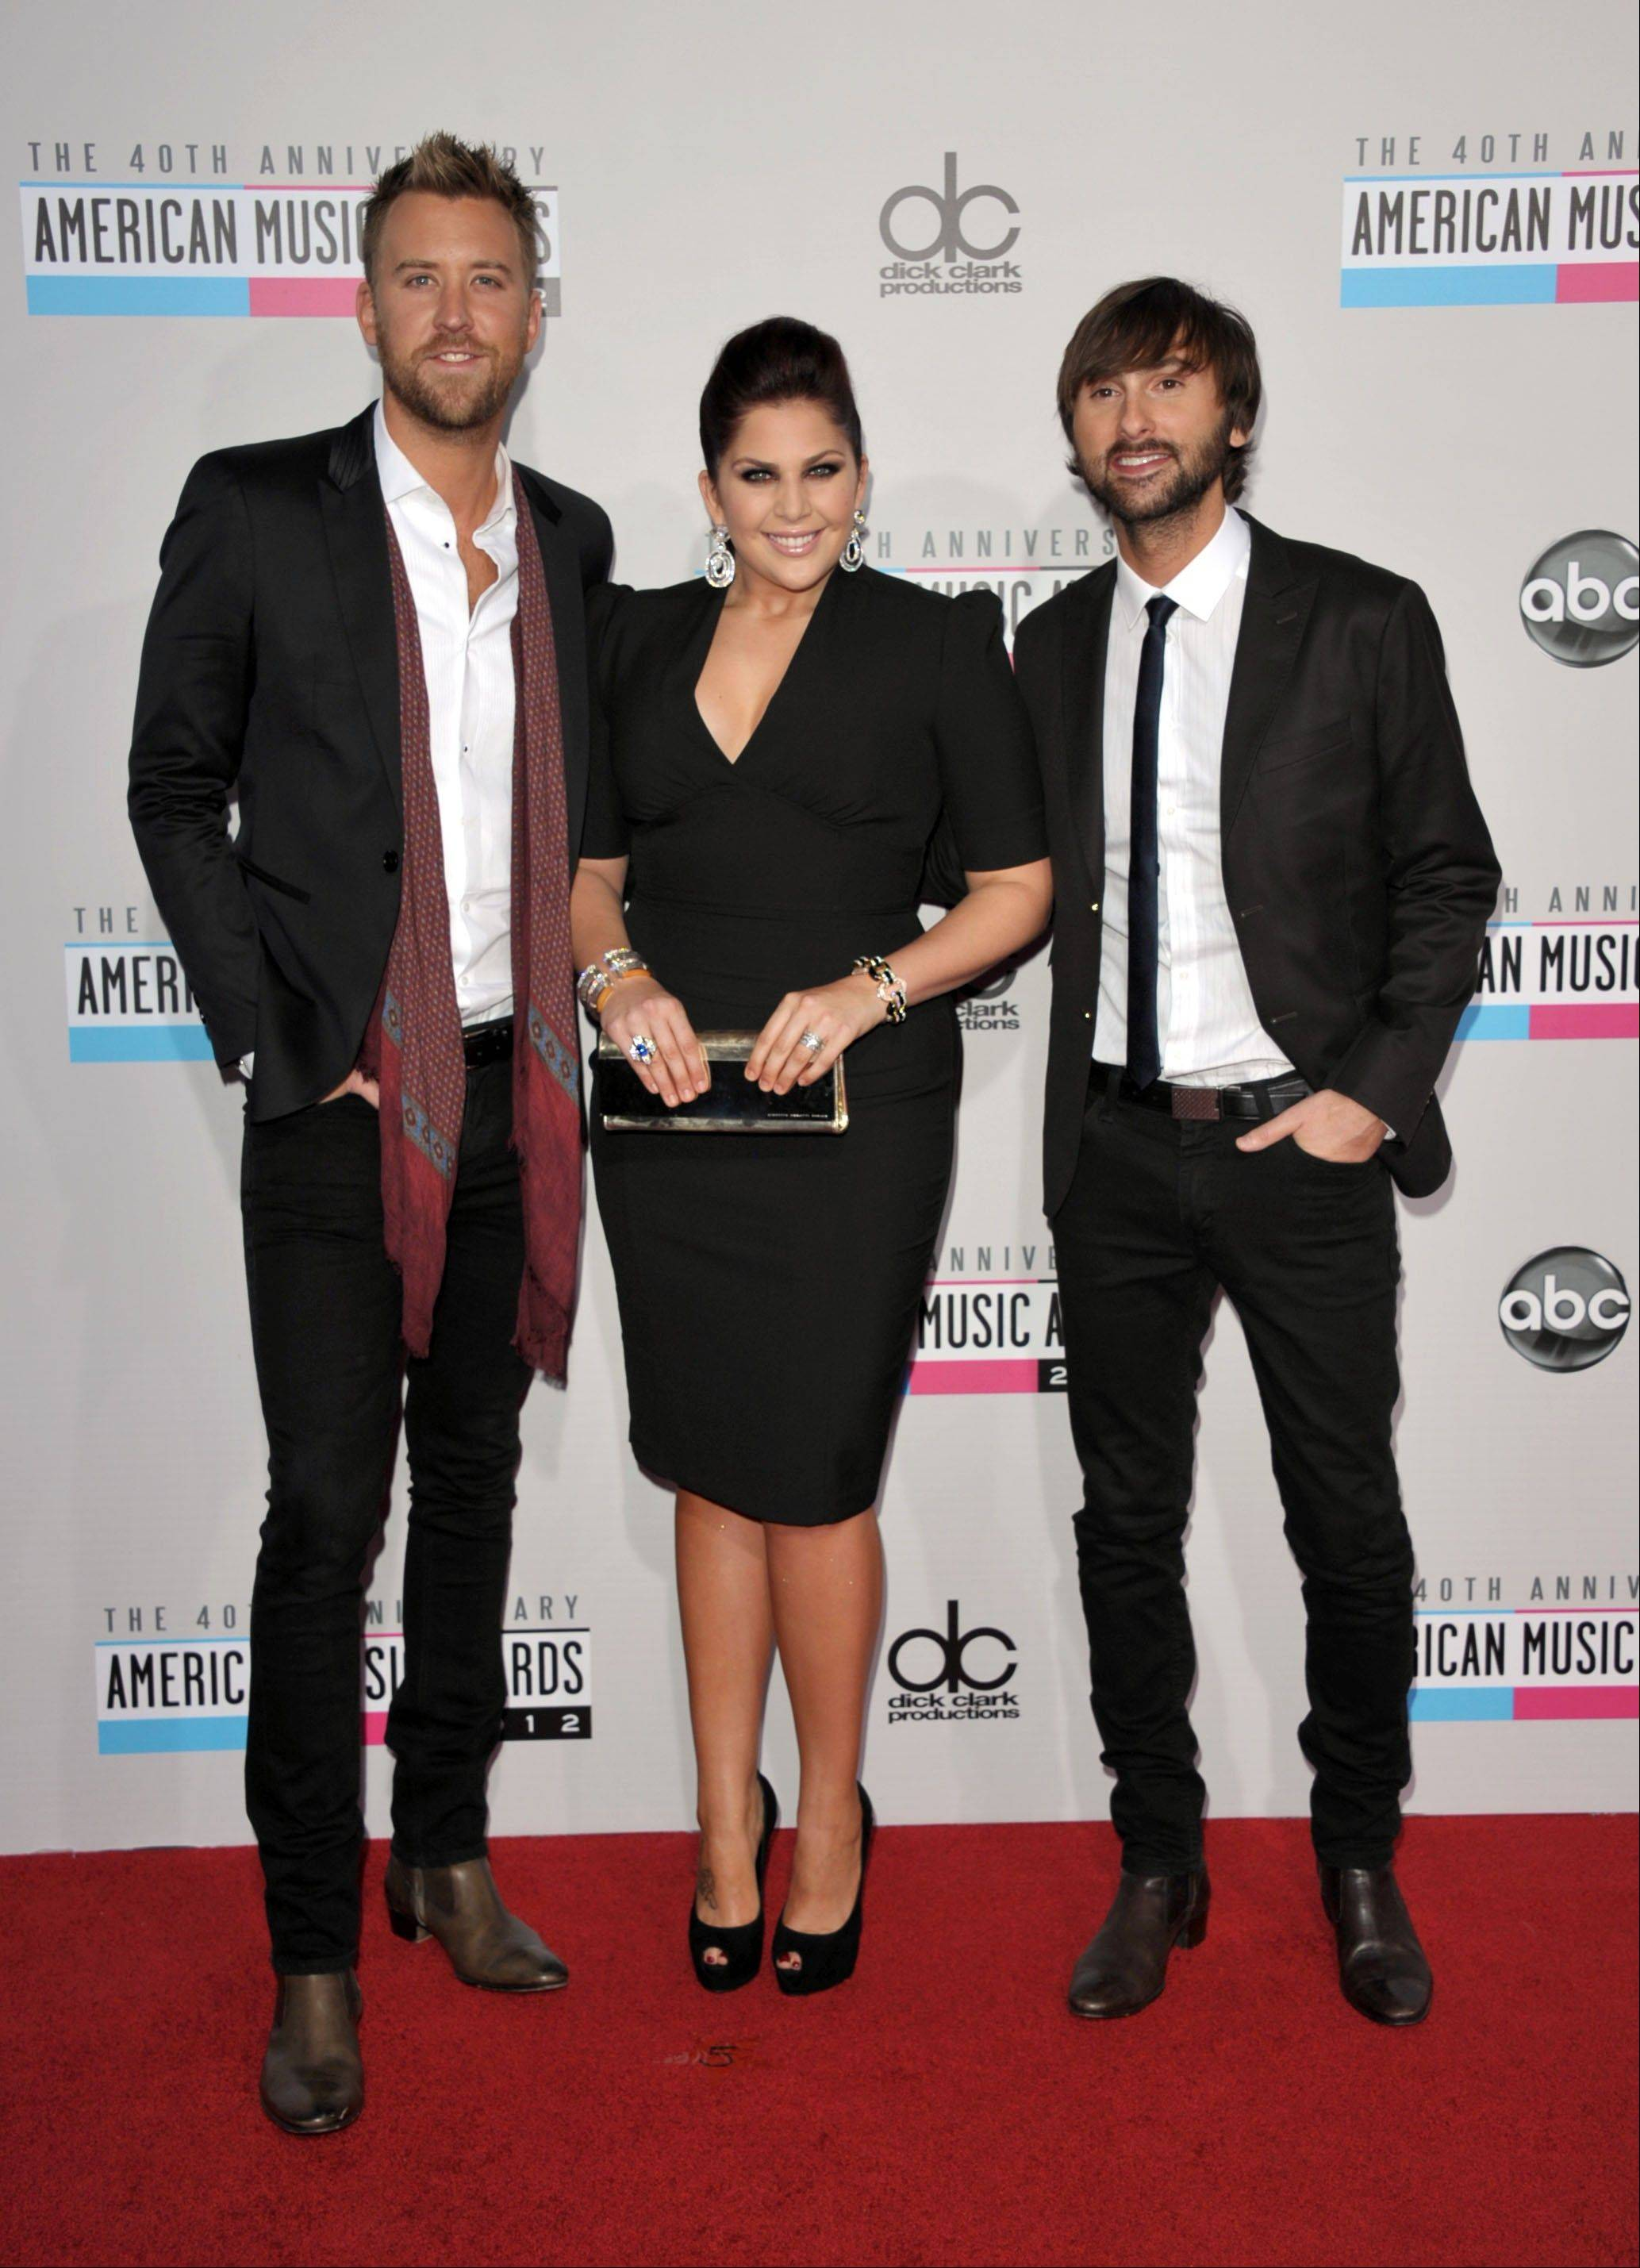 Charles Kelley, left, Hillary Scott, center, and Dave Haywood from the band Lady Antebellum arrive at the 40th Anniversary American Music Awards on Sunday, Nov. 18, 2012, in Los Angeles.